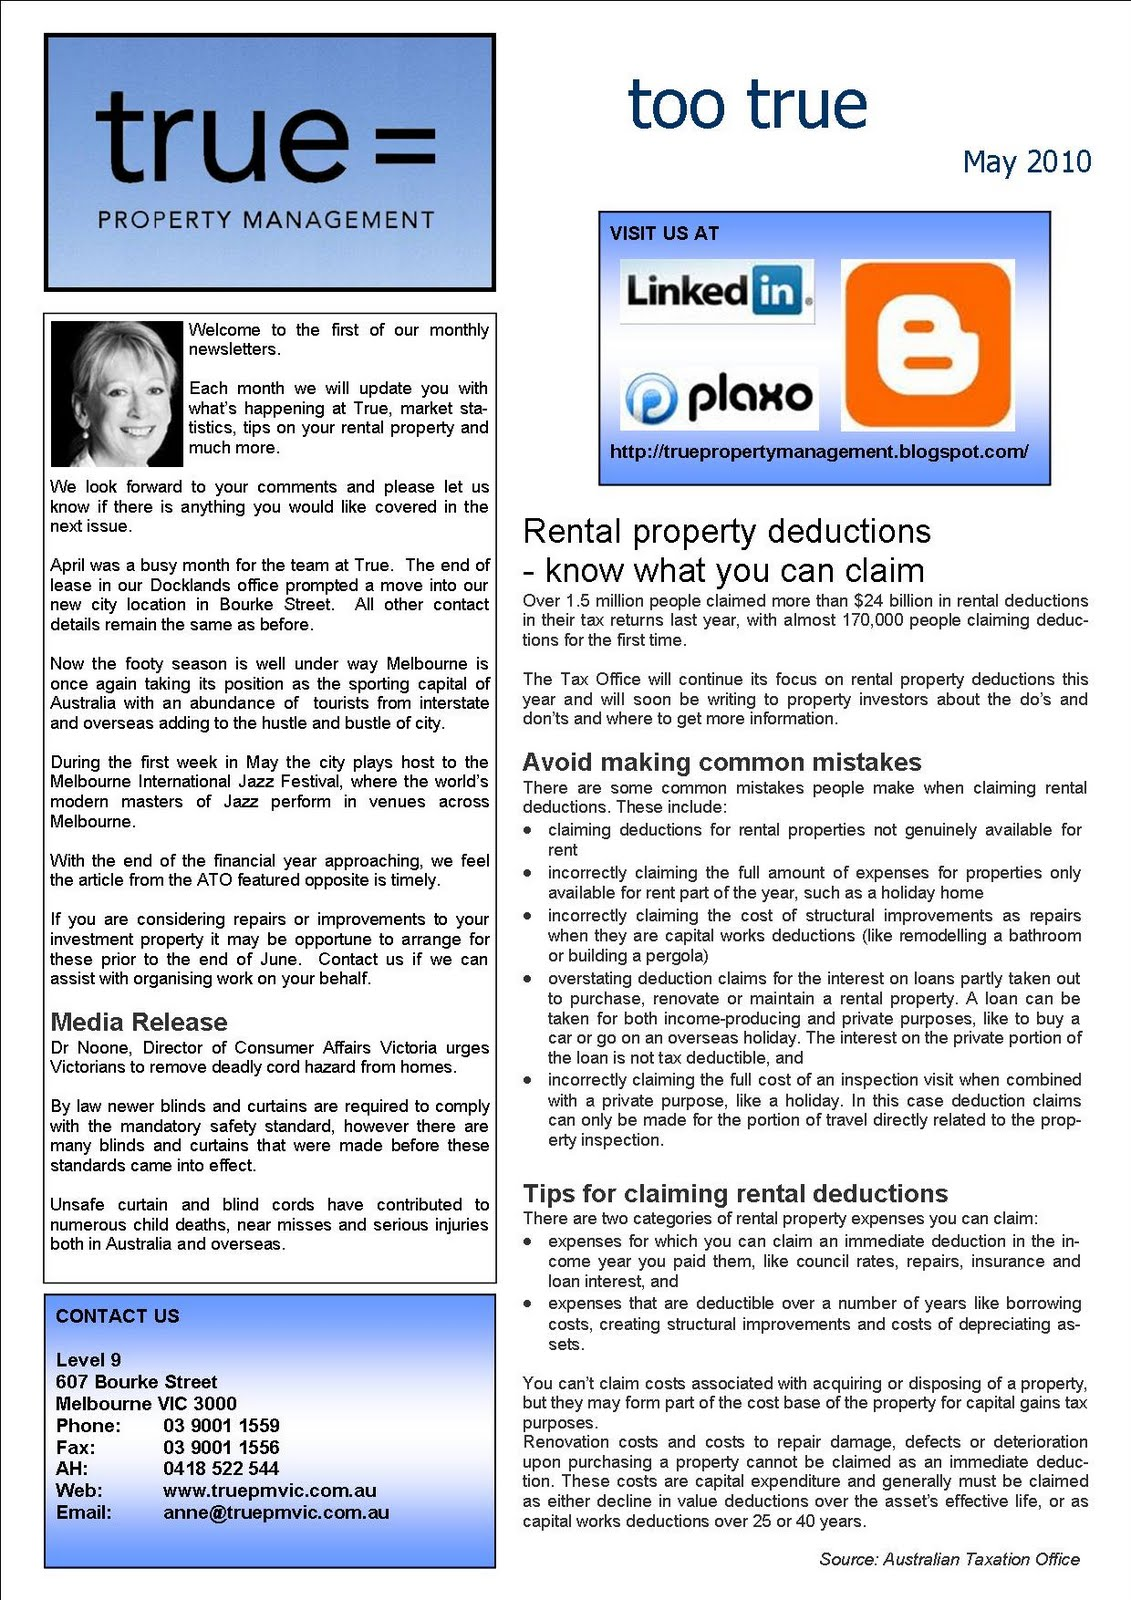 a regular newsletter is an effective marketing tool for real estate agents newsletters can establish you as a market expert give you ongoing communication